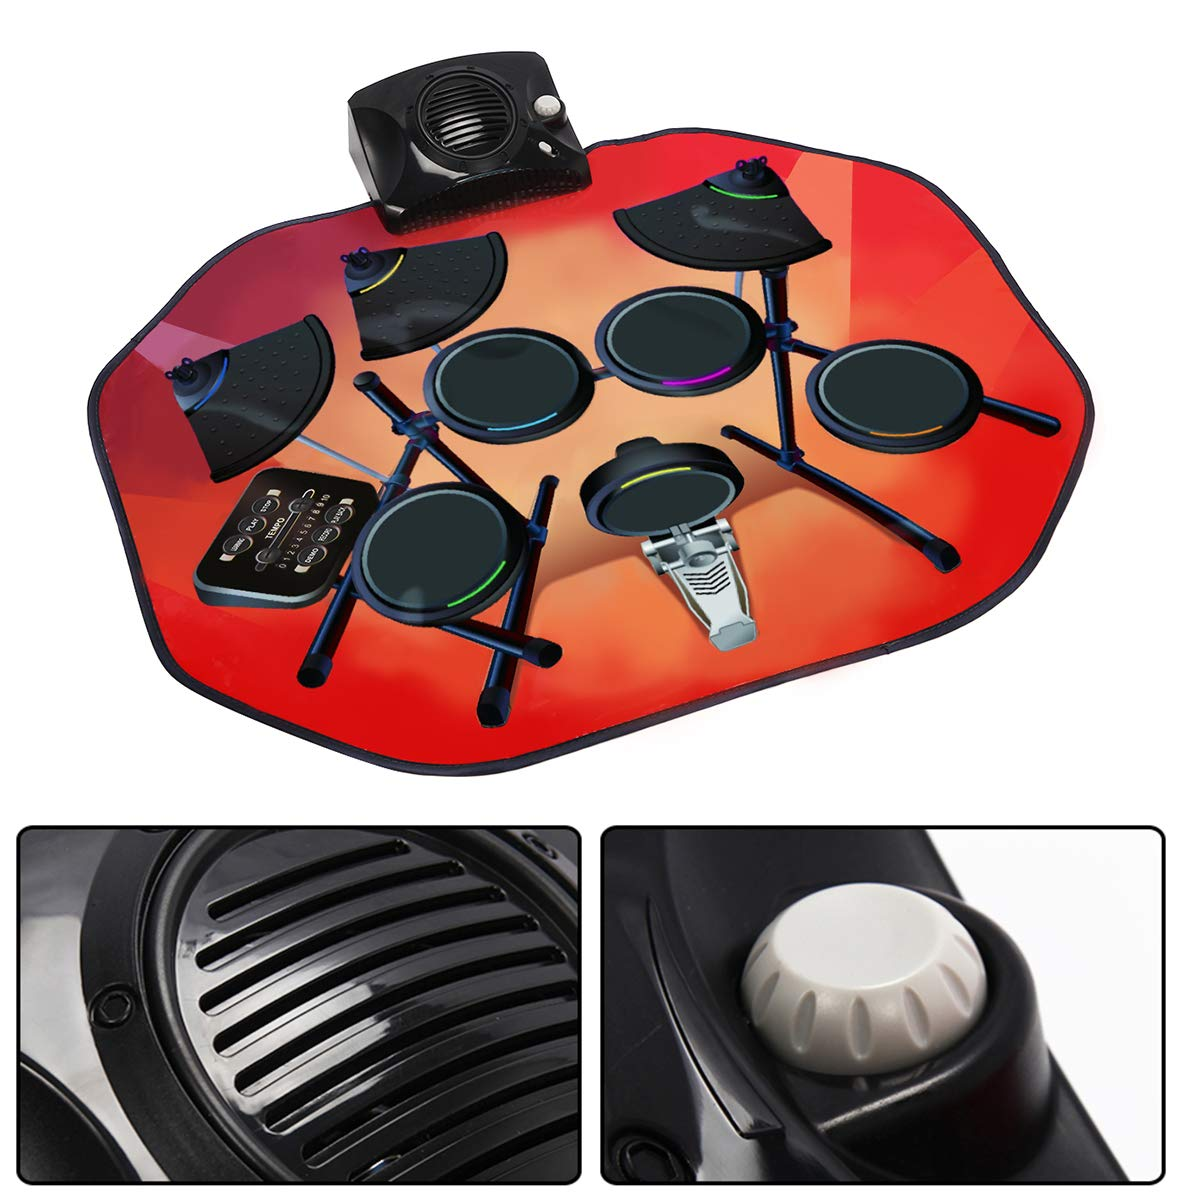 Costzon Electronic Drum Mat, 8 Keys Glowing Music Mat with LED Lights,MP3 Cable, Drumsticks, Support Play - Study-Record - Playback - Demo 5 Modes, Volume Control by Costzon (Image #4)